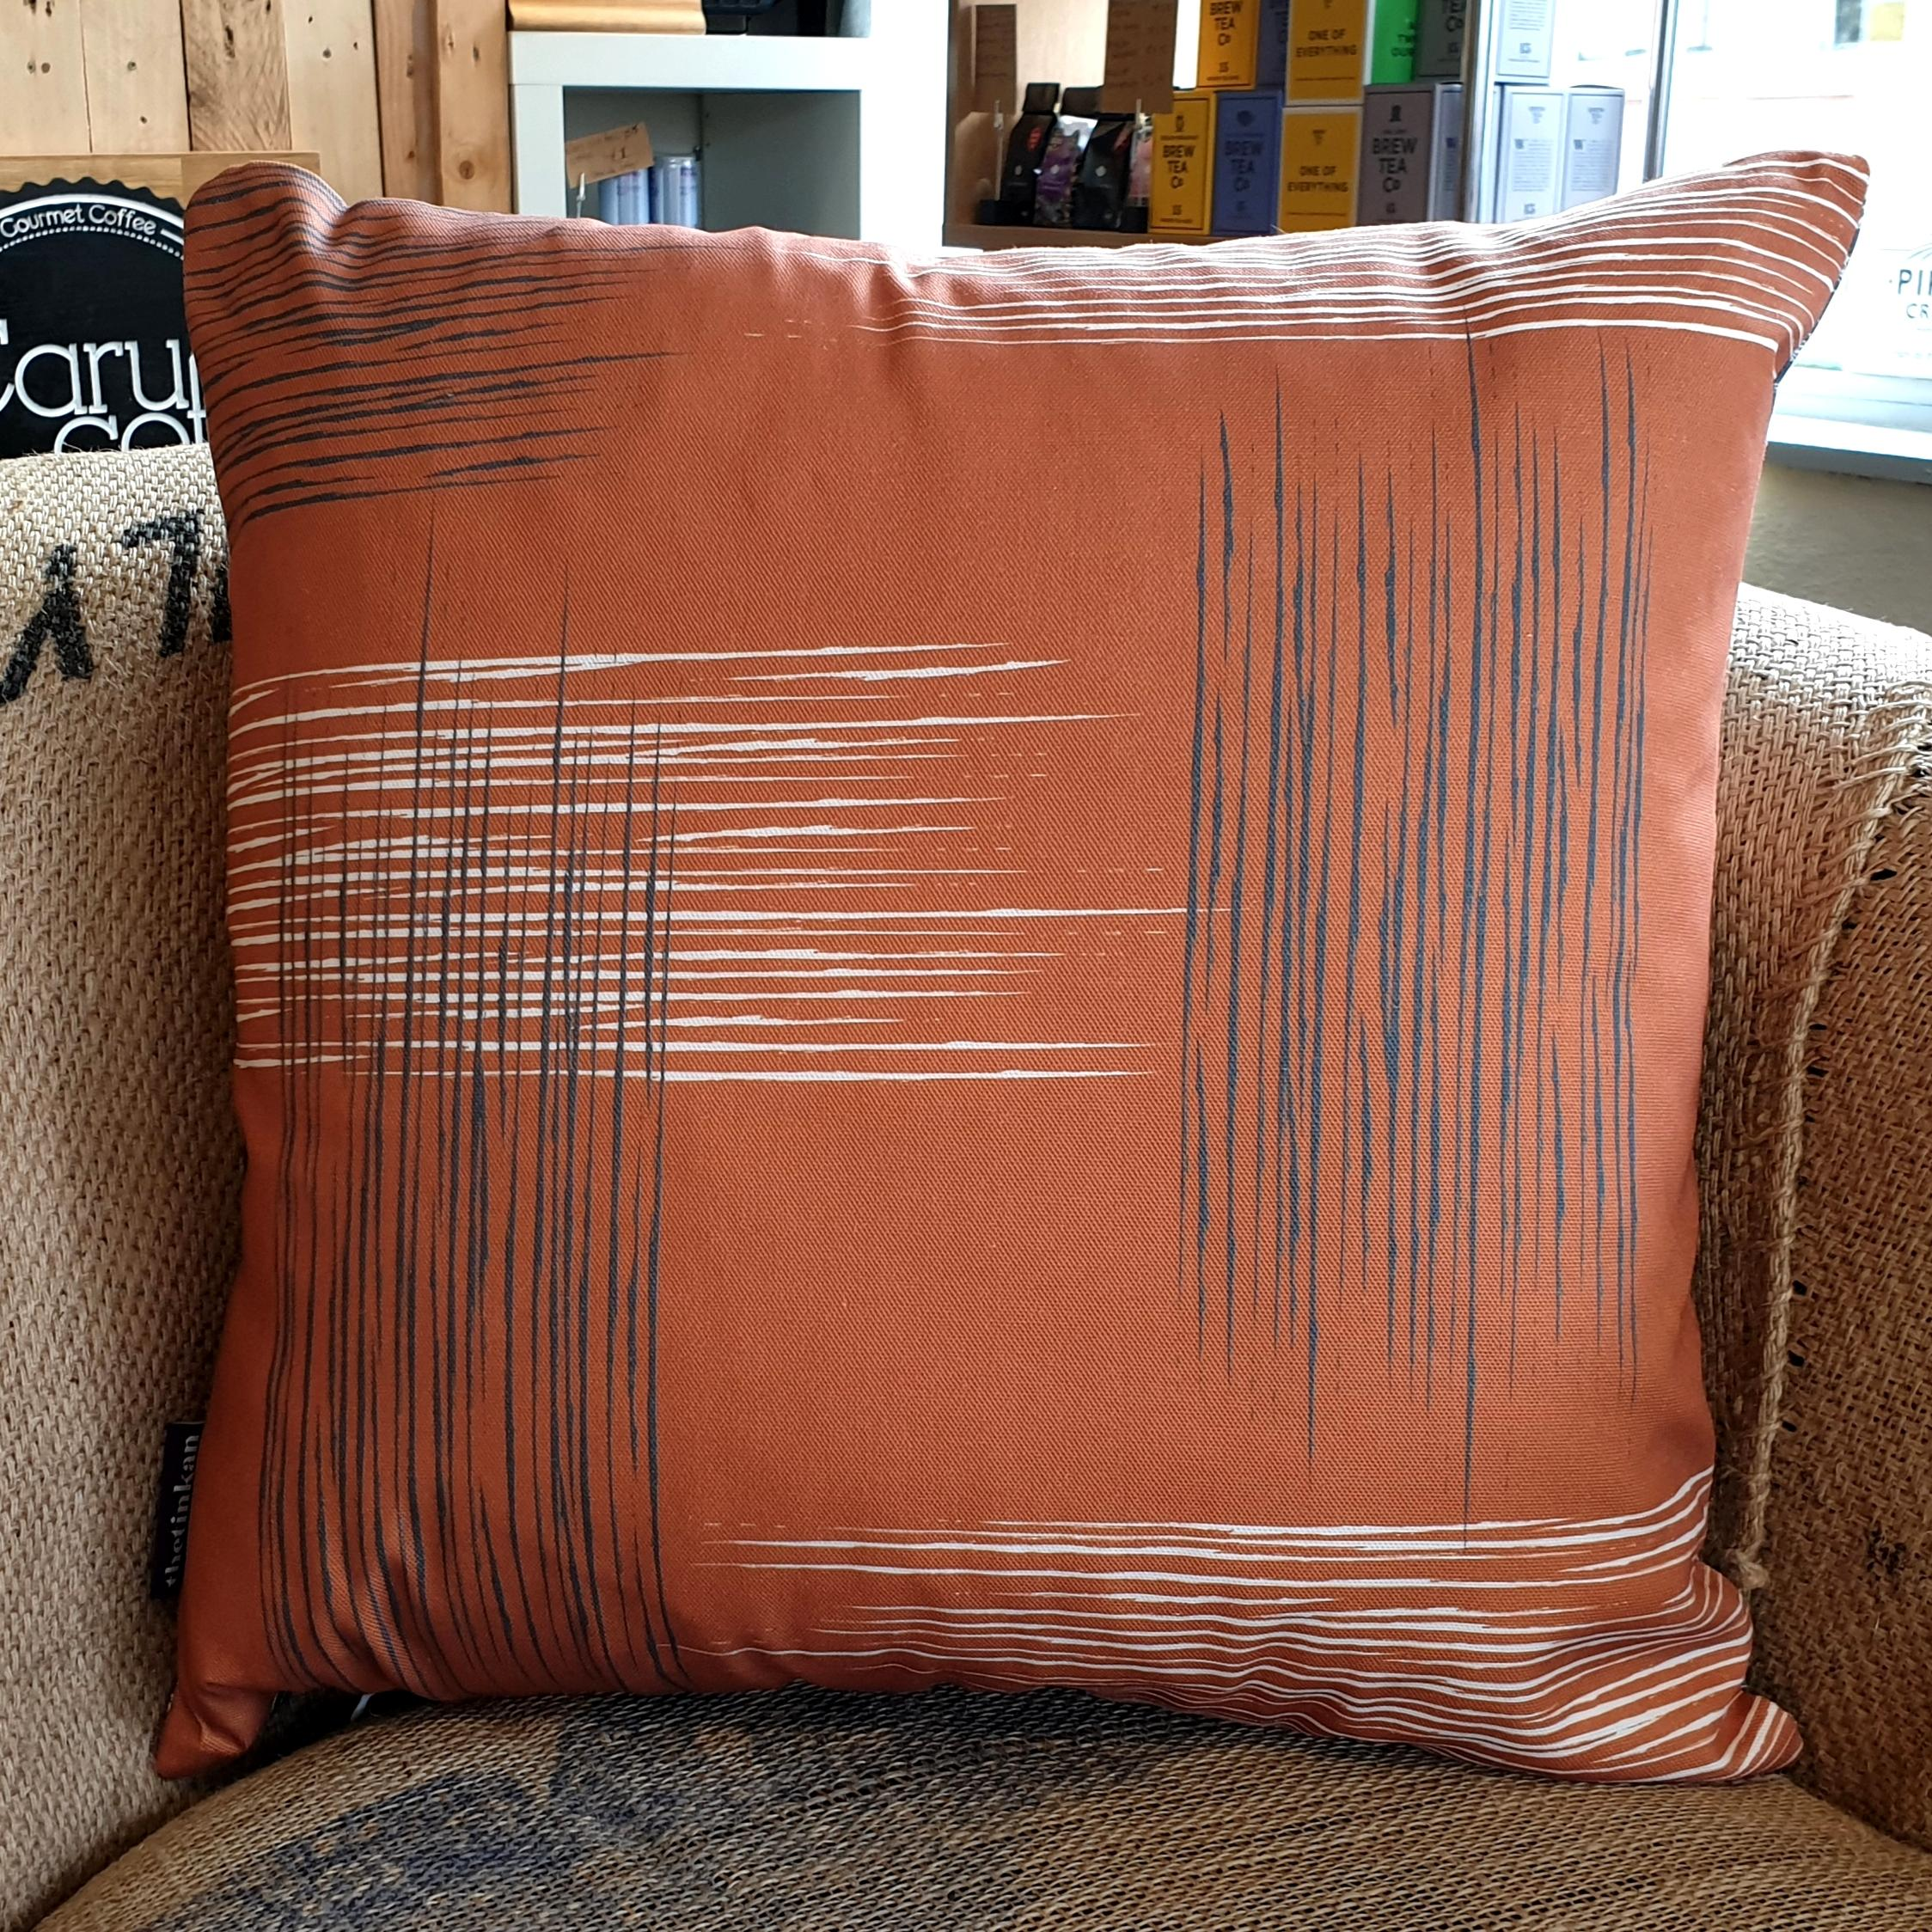 Double-sided warm rust orange 45cm square retro themed cushion with artistic grey and white shards designed by thetinkan. Available with an optional luxury cushion inner pad. VIEW PRODUCT >>